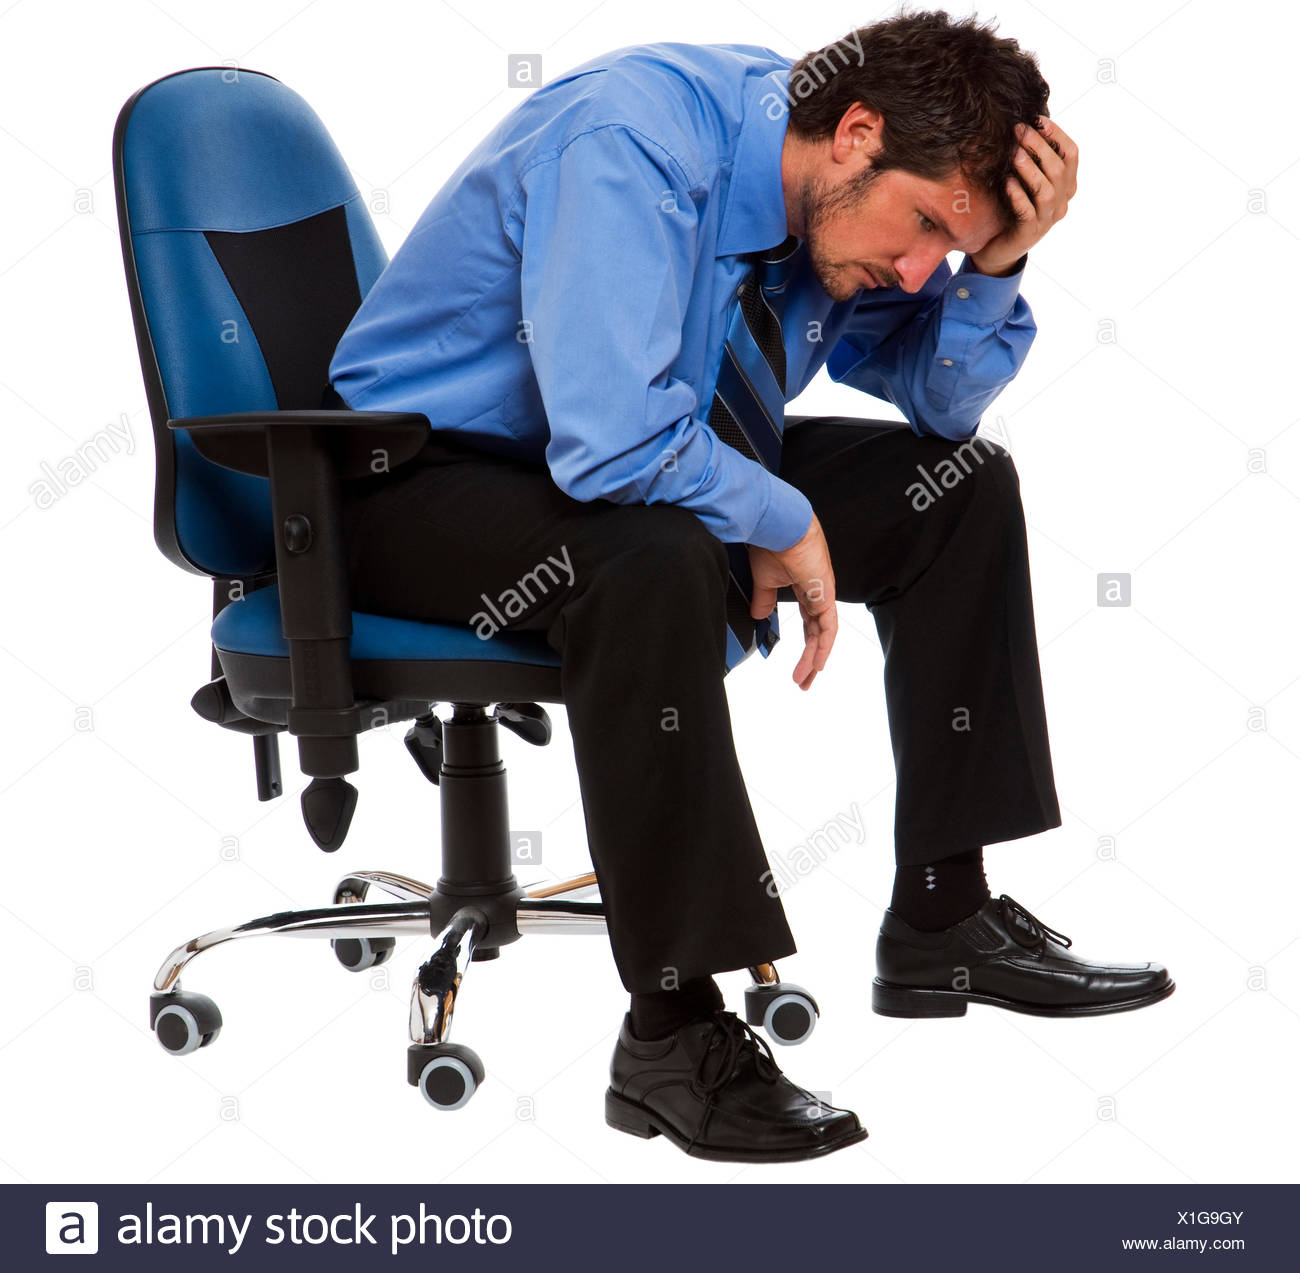 business man businessman put sitting sit chair man isolated conflict person frustration argue noise business dealings deal - Stock Image